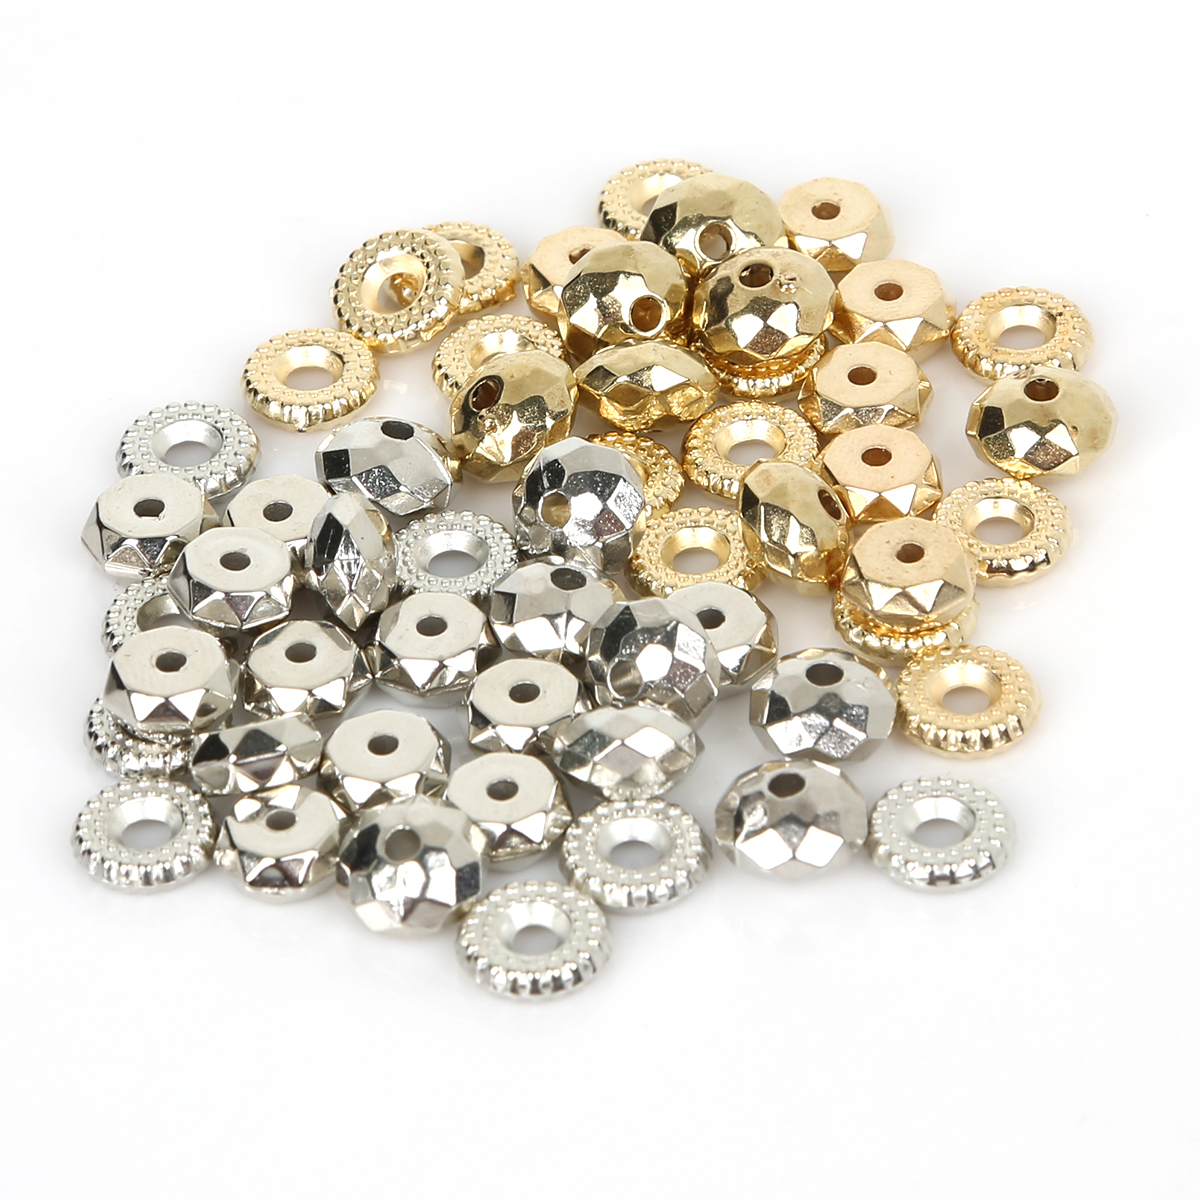 100-500pcs/lot 5-11mm CCB Material Gold Rhodium Spacers Loose Beads Jewelry Findings For DIY Bracelet Necklace Jewelry Making